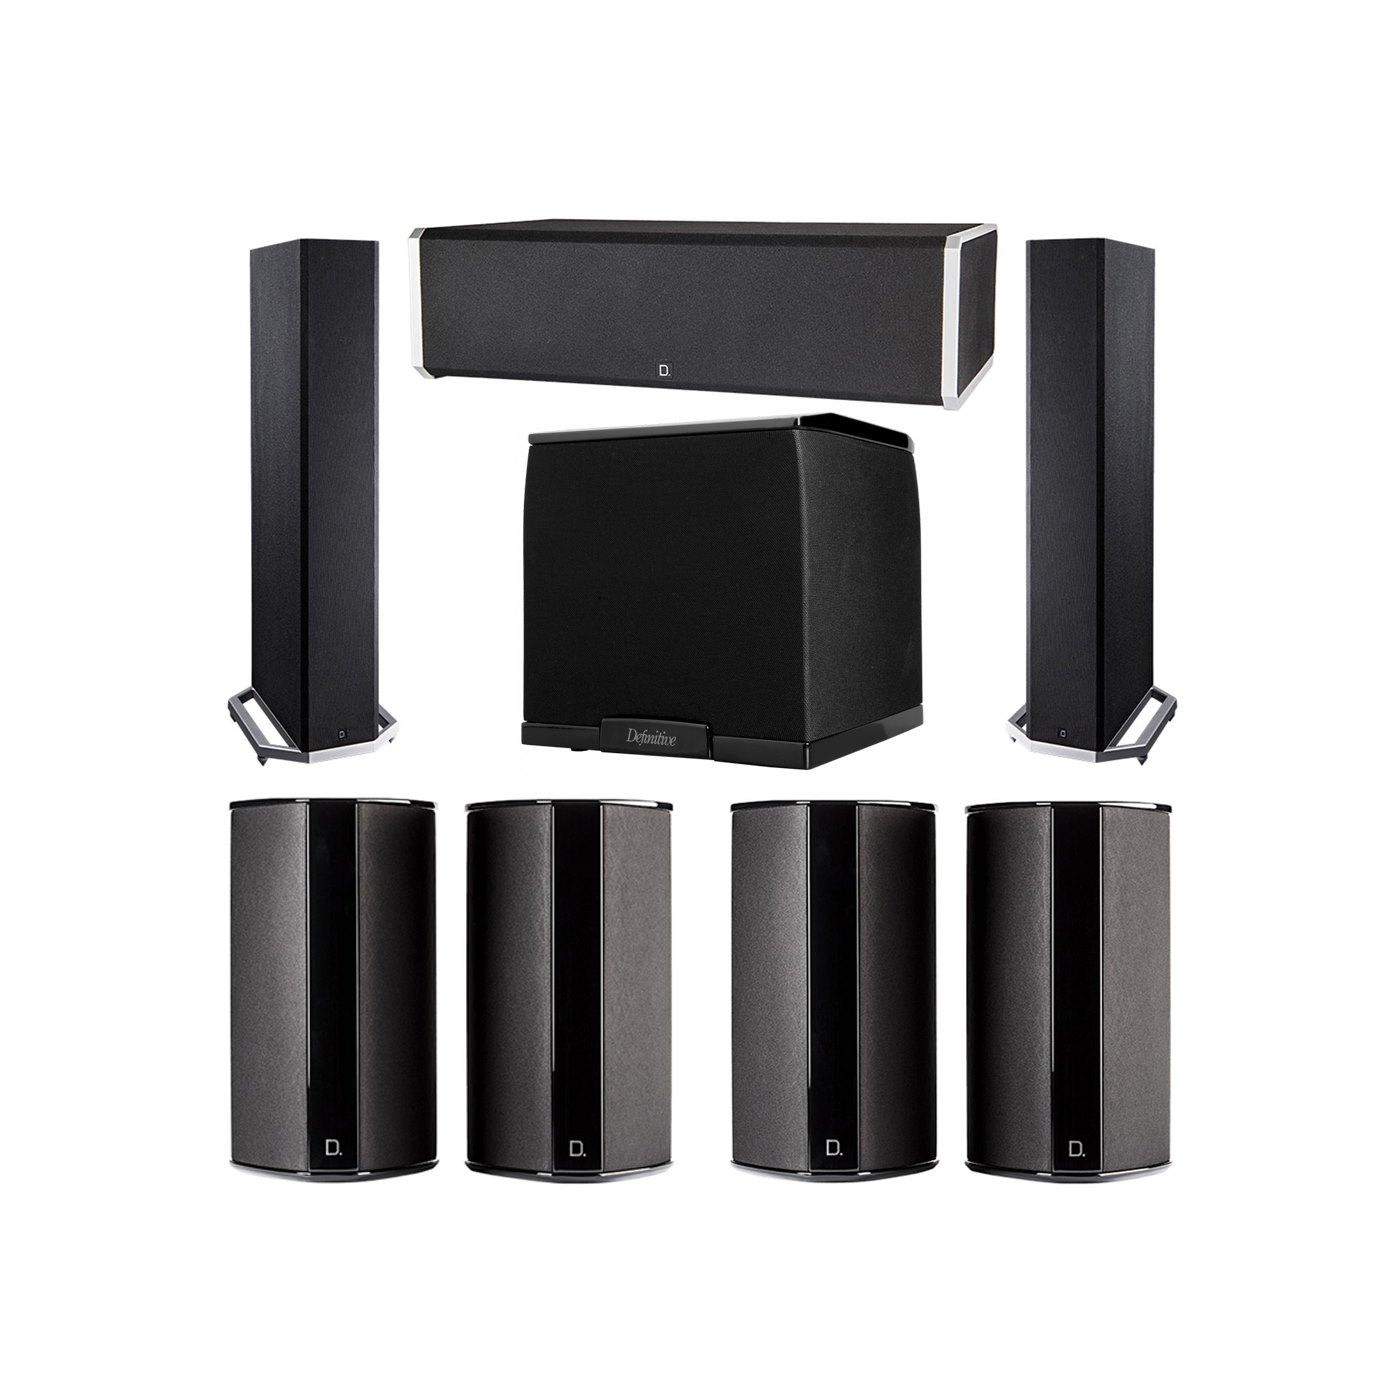 Definitive Technology 7.1 System with 2 BP9020 Tower Speakers, 1 CS9060 Center Channel Speaker, 4 SR9080 Surround Speaker, 1 Definitive Technology SuperCube 2000 Powered Subwoofer